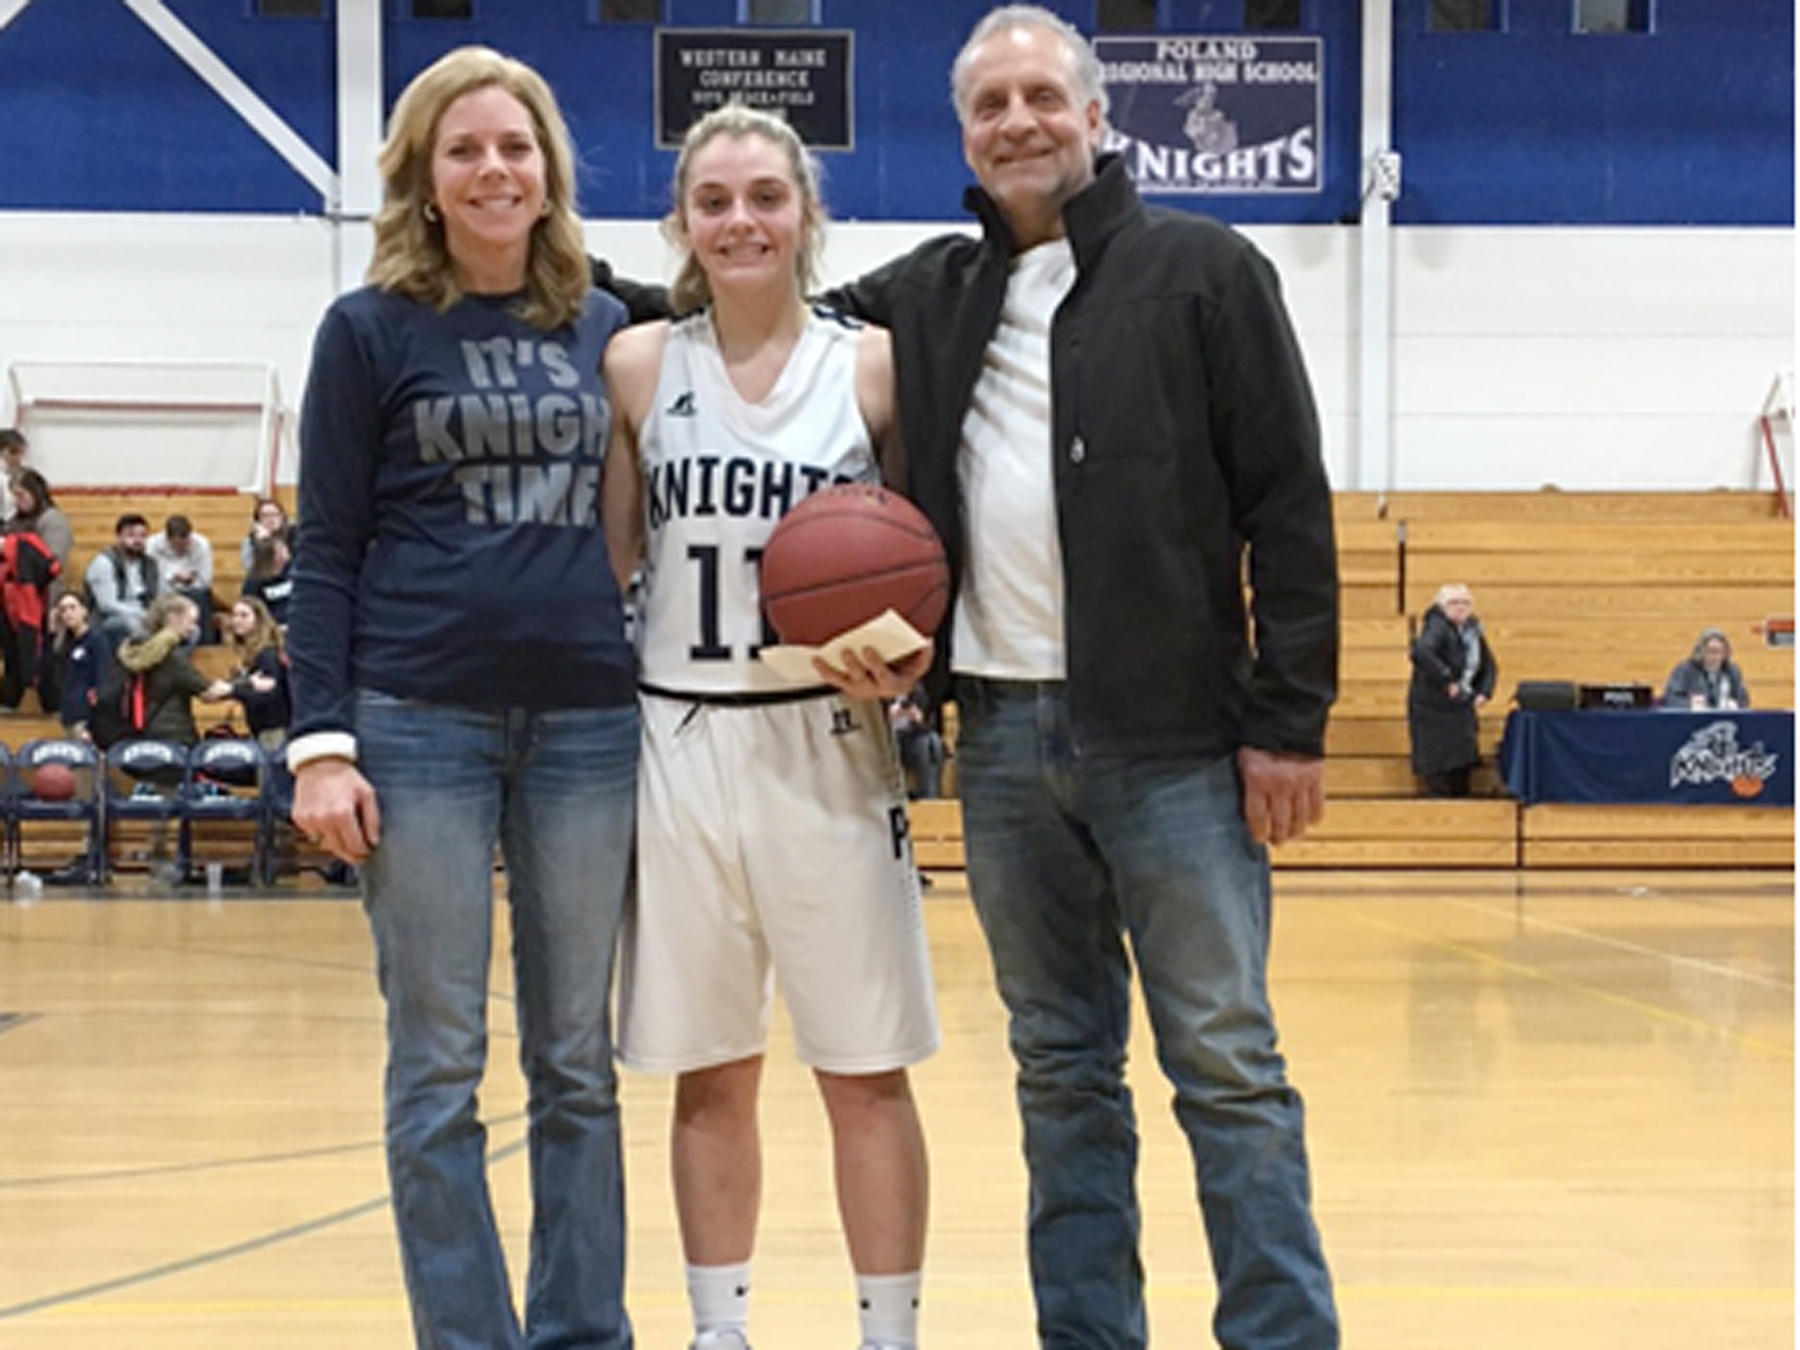 PRHS Basketball Player with her parents